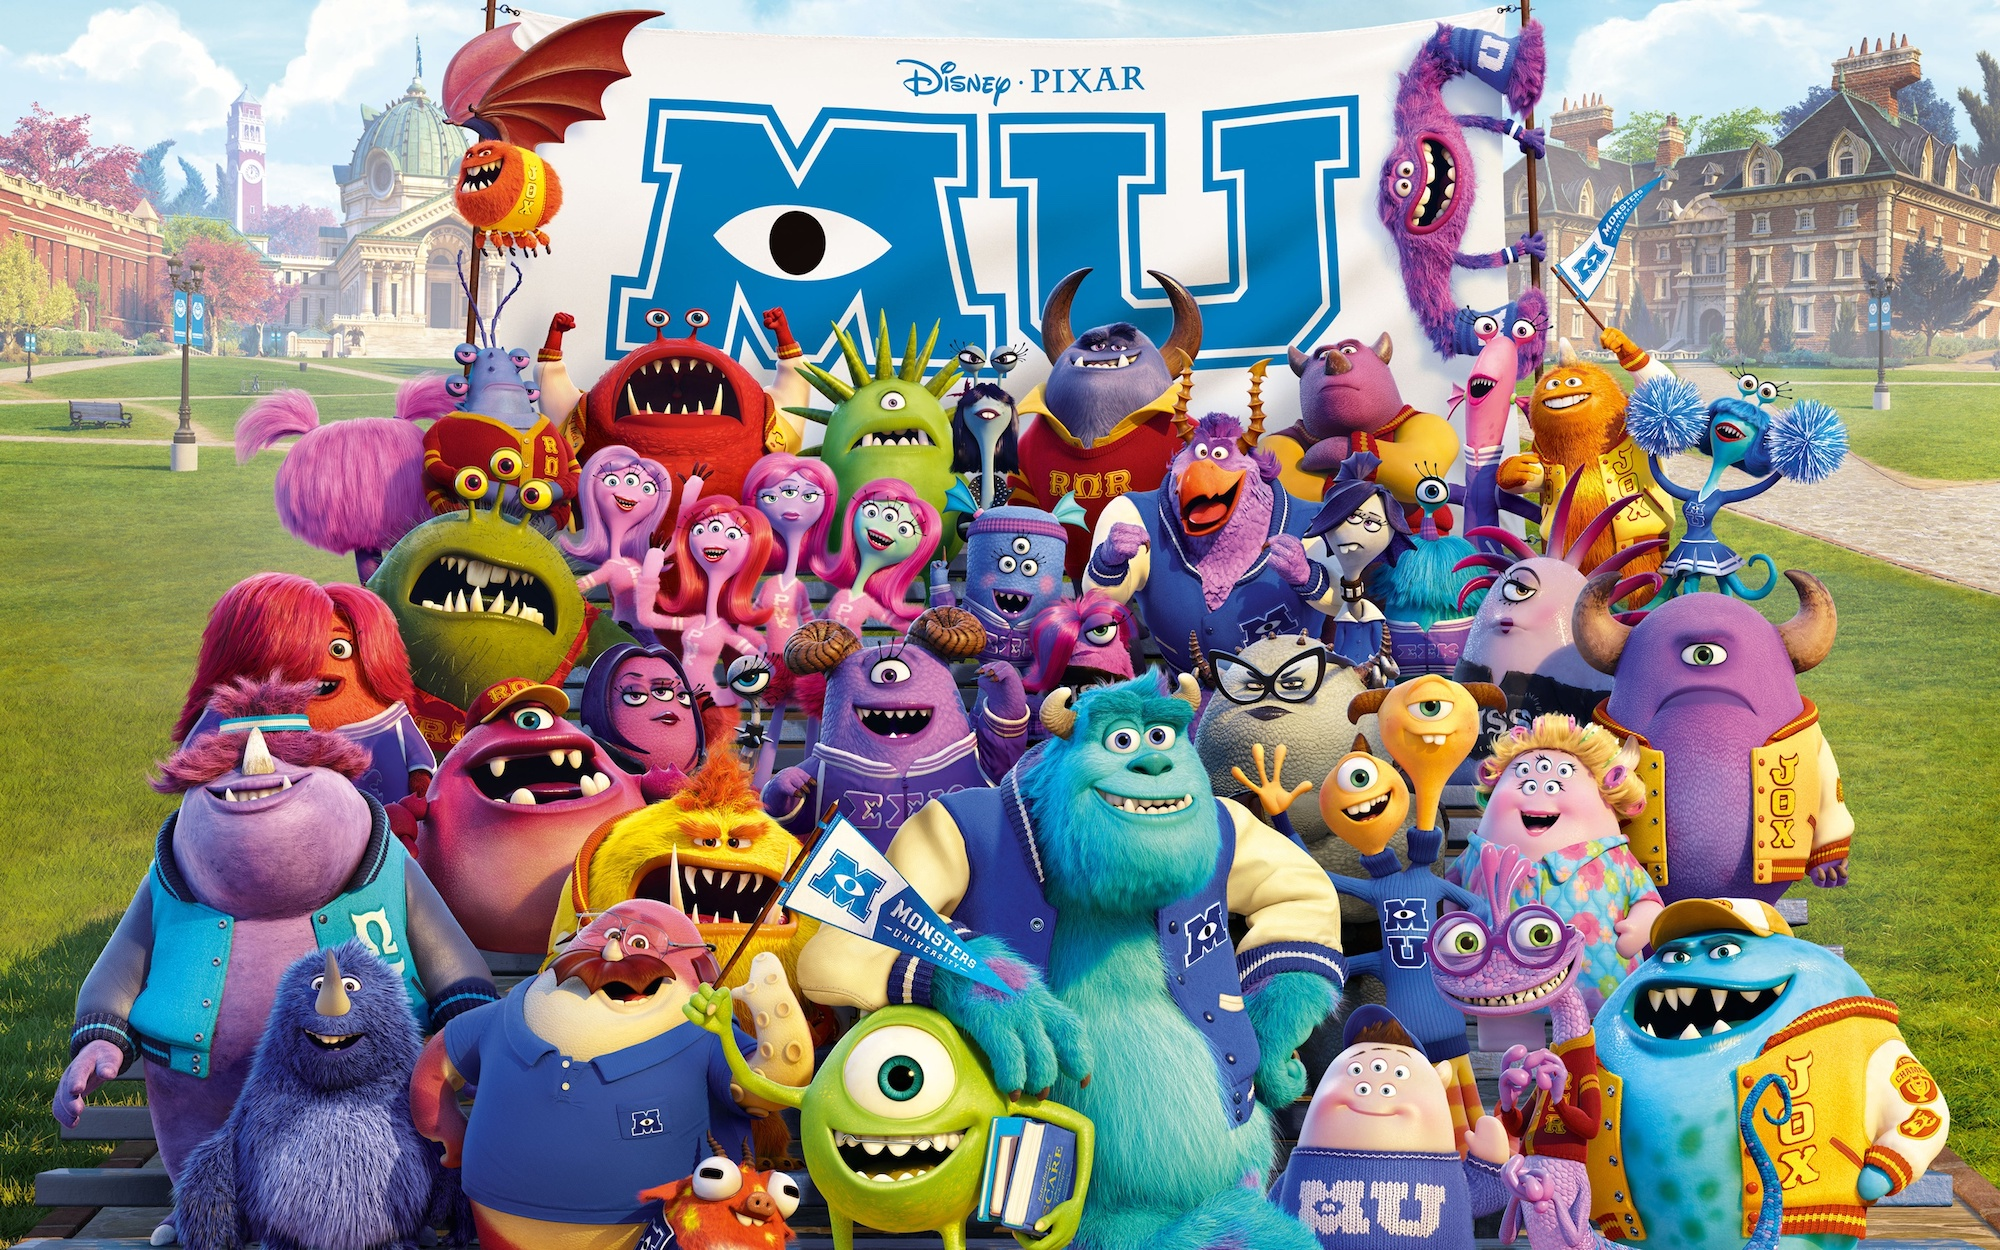 Disney Pixar Monsters University